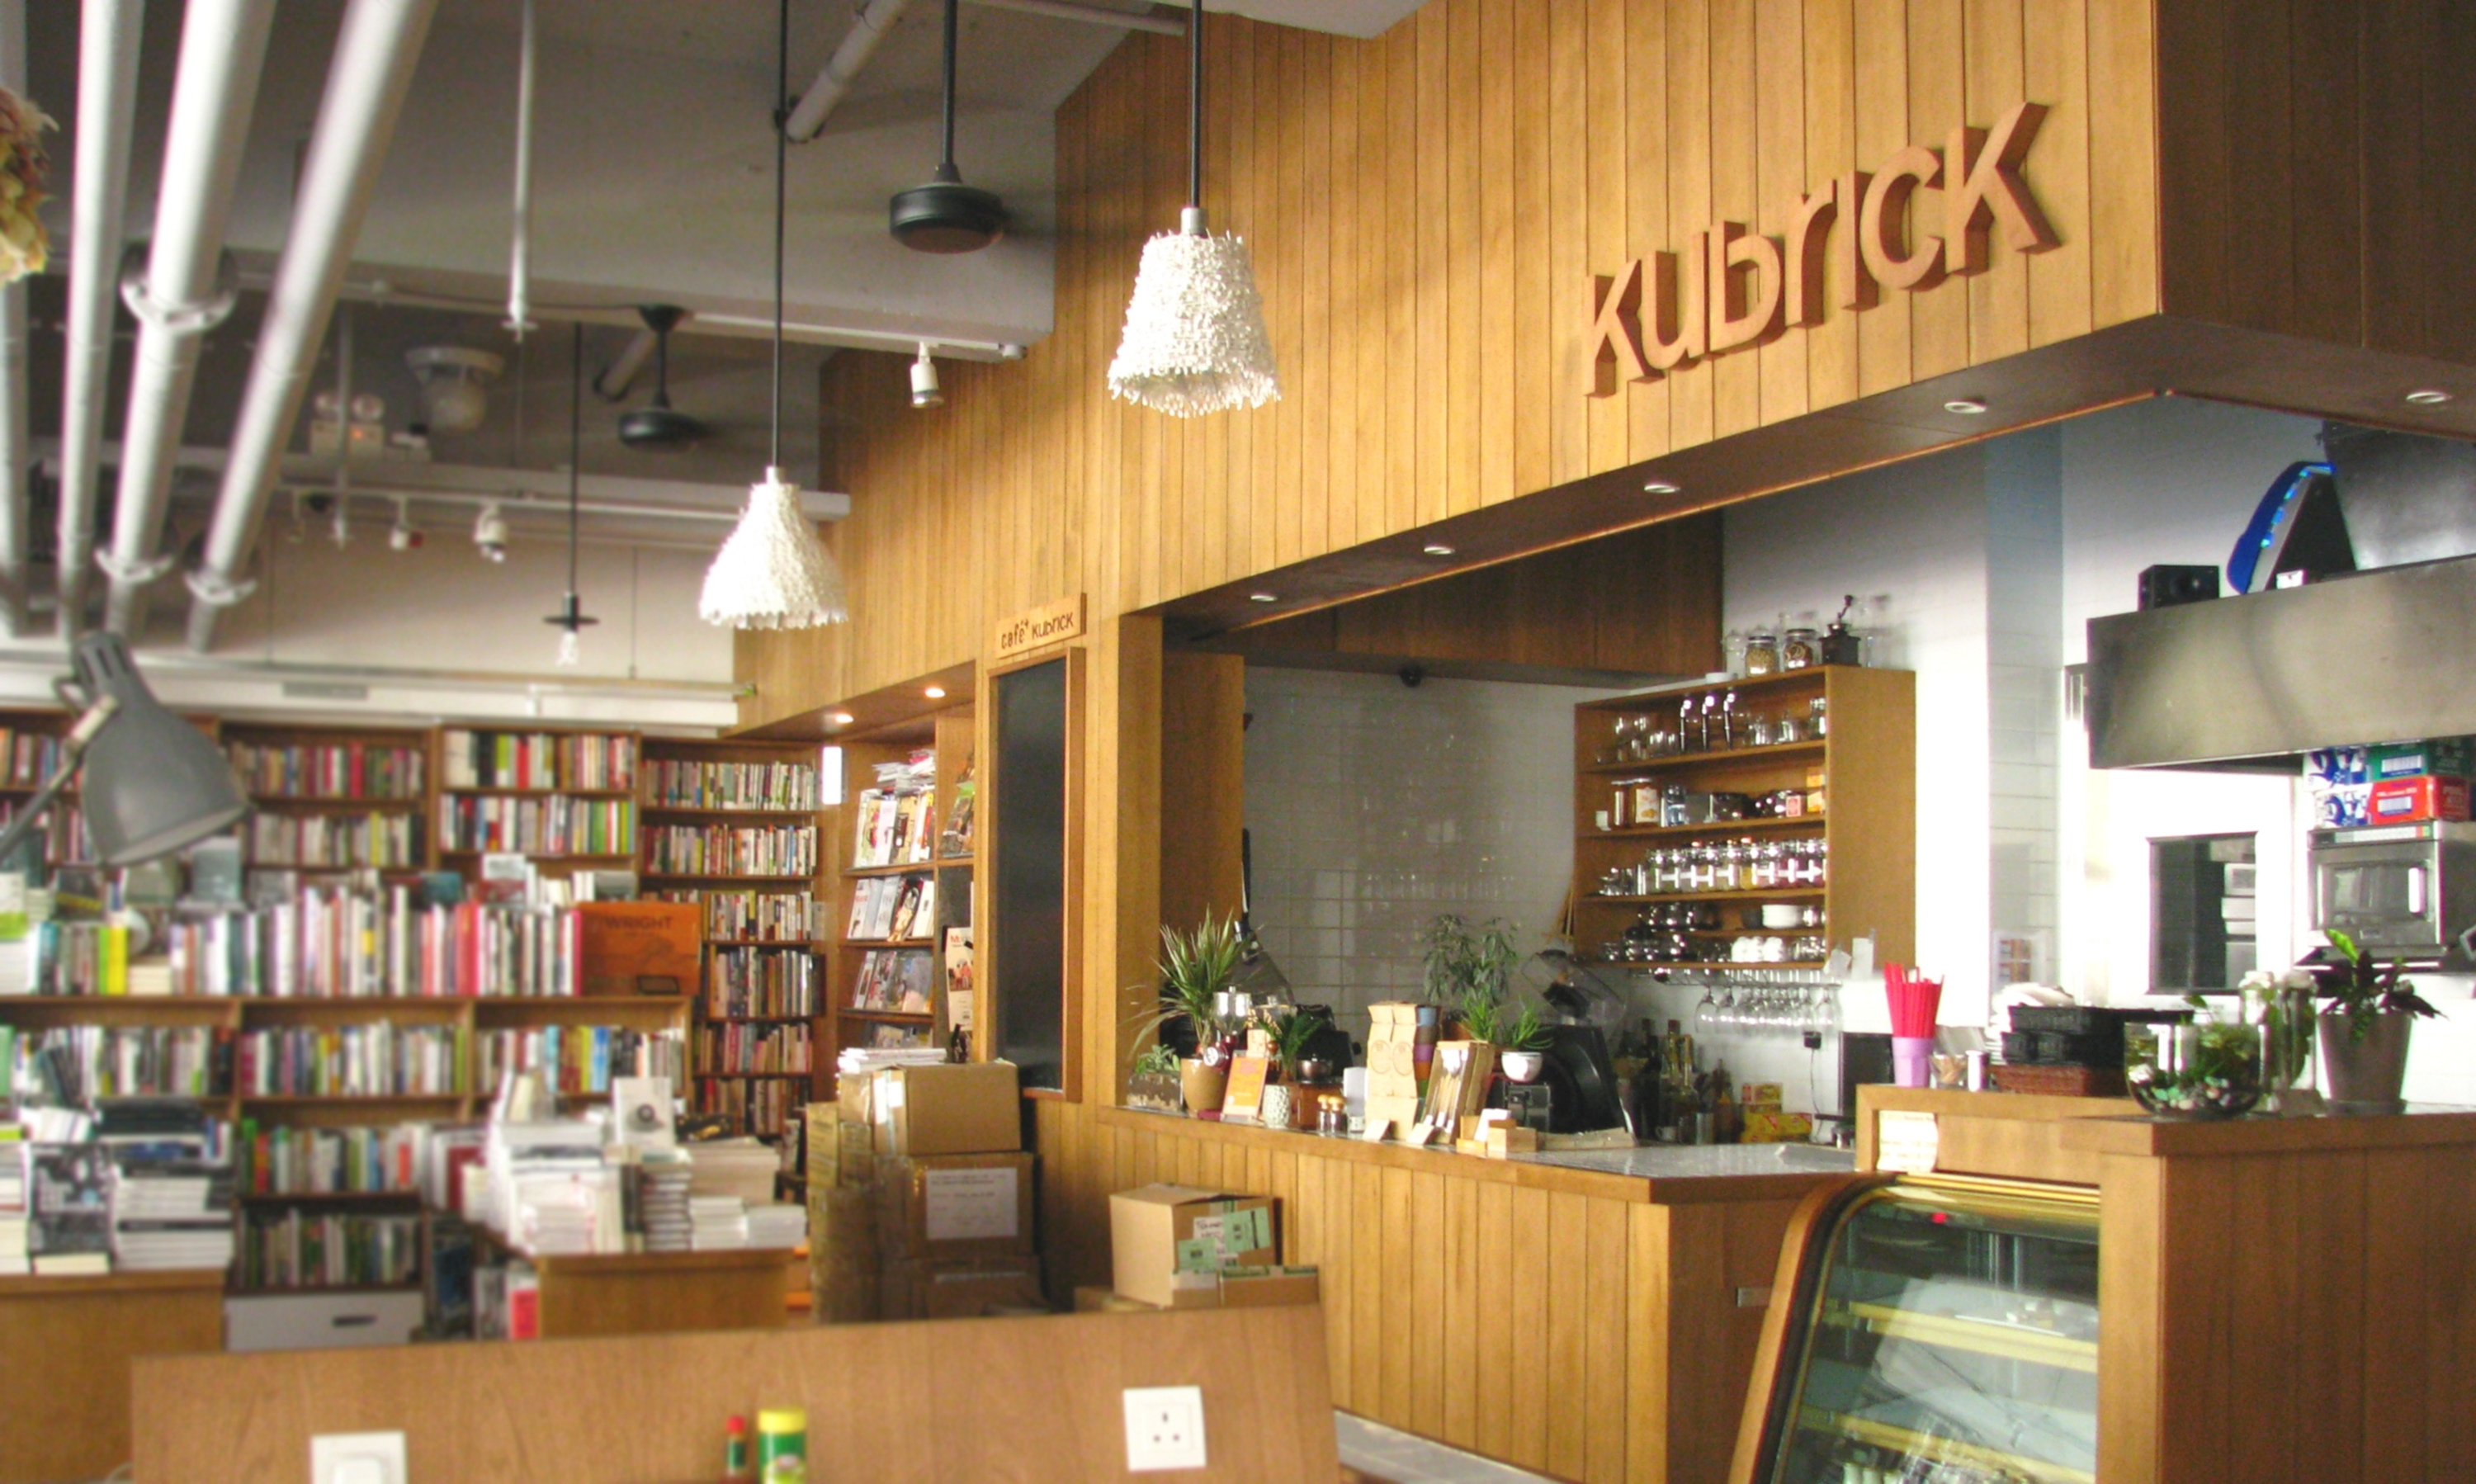 Kubrick Bookshop Cafe